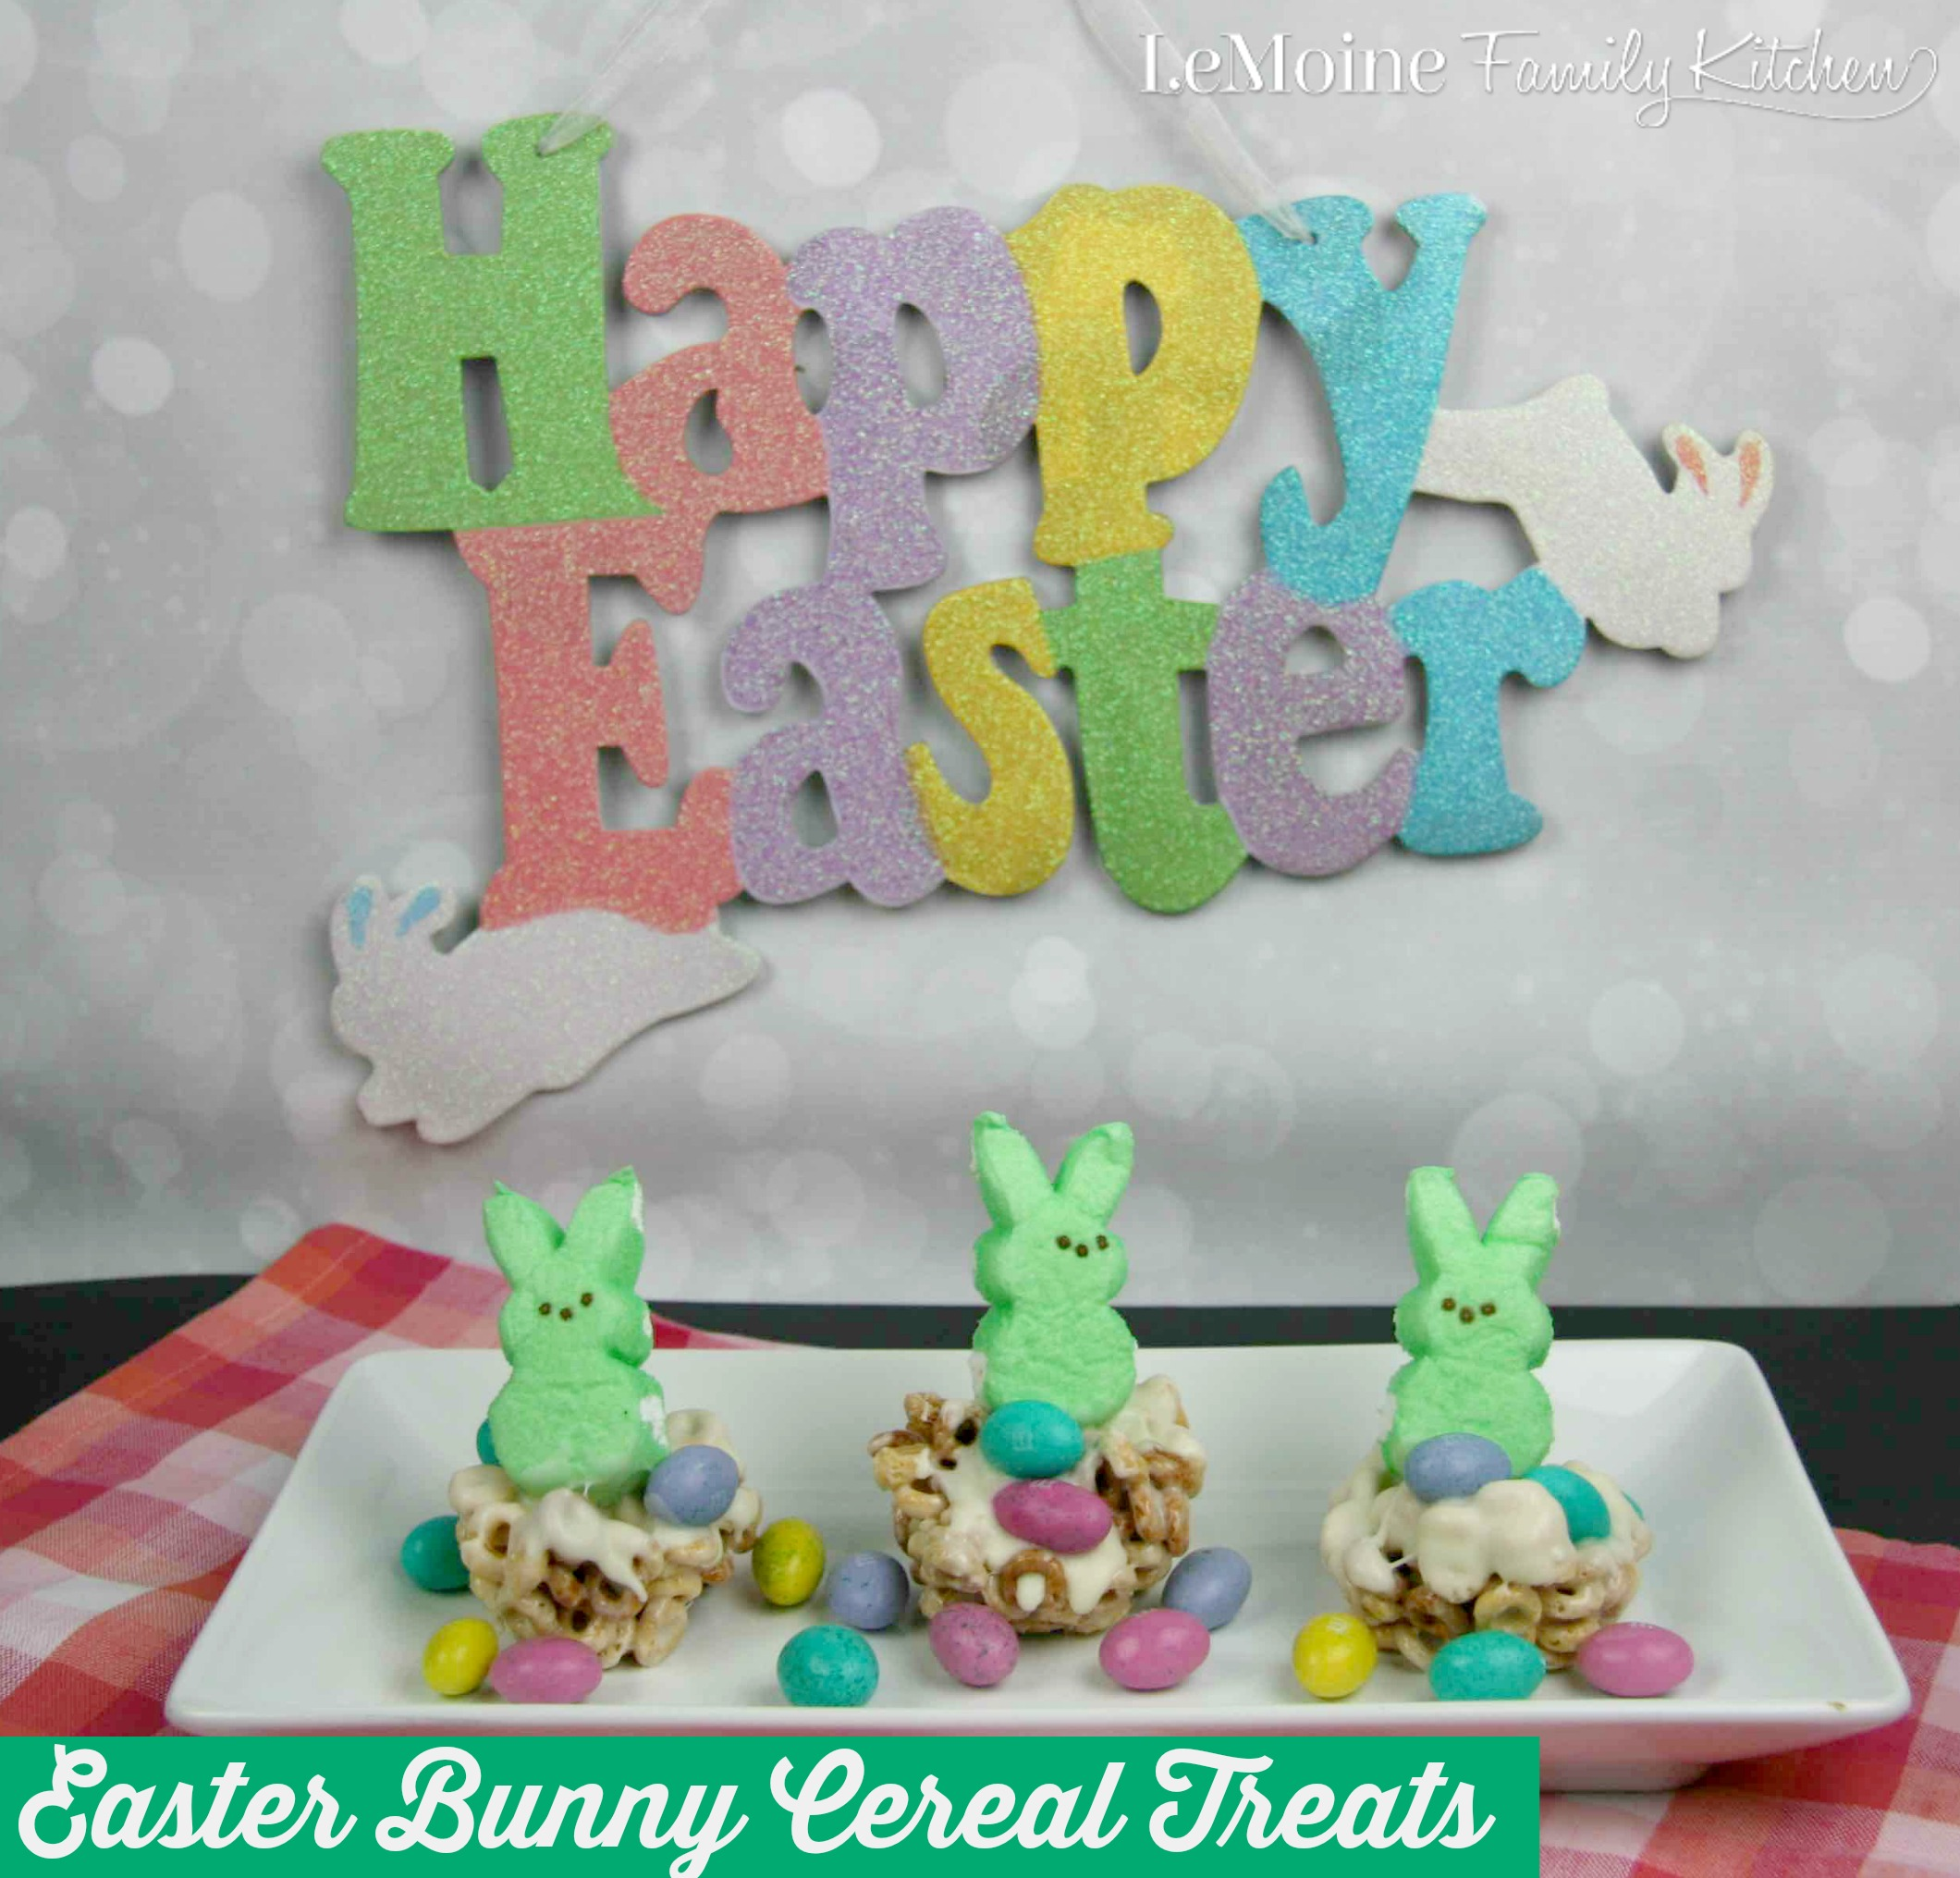 Easter Bunny Cereal Treats | LeMoine Family Kitchen. Perfect easy Easter dessert! Adorable and delicious sweet treat!